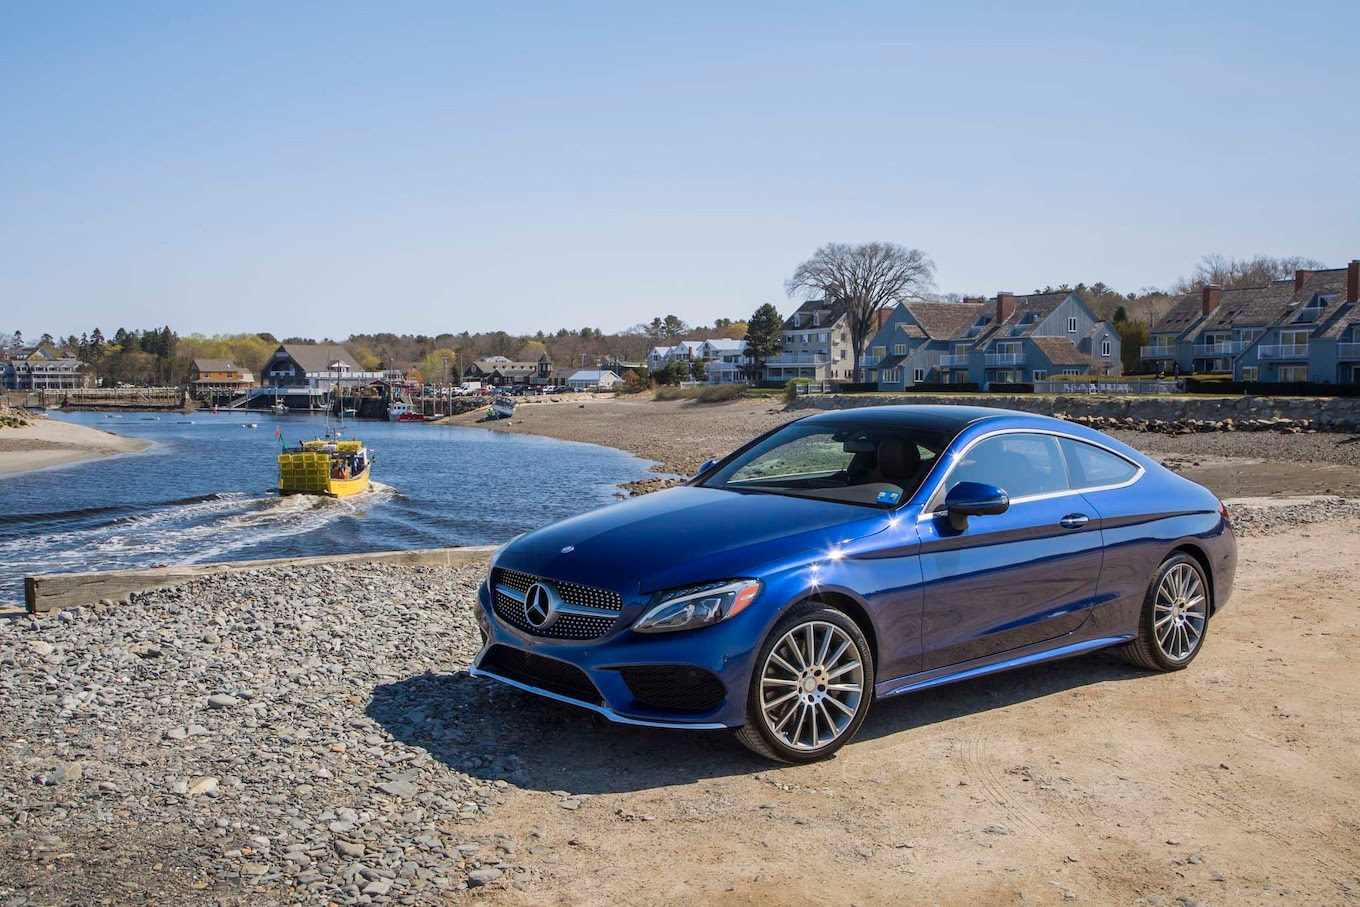 2017 Mercedes-Benz C300 Coupe Review - Second Drive